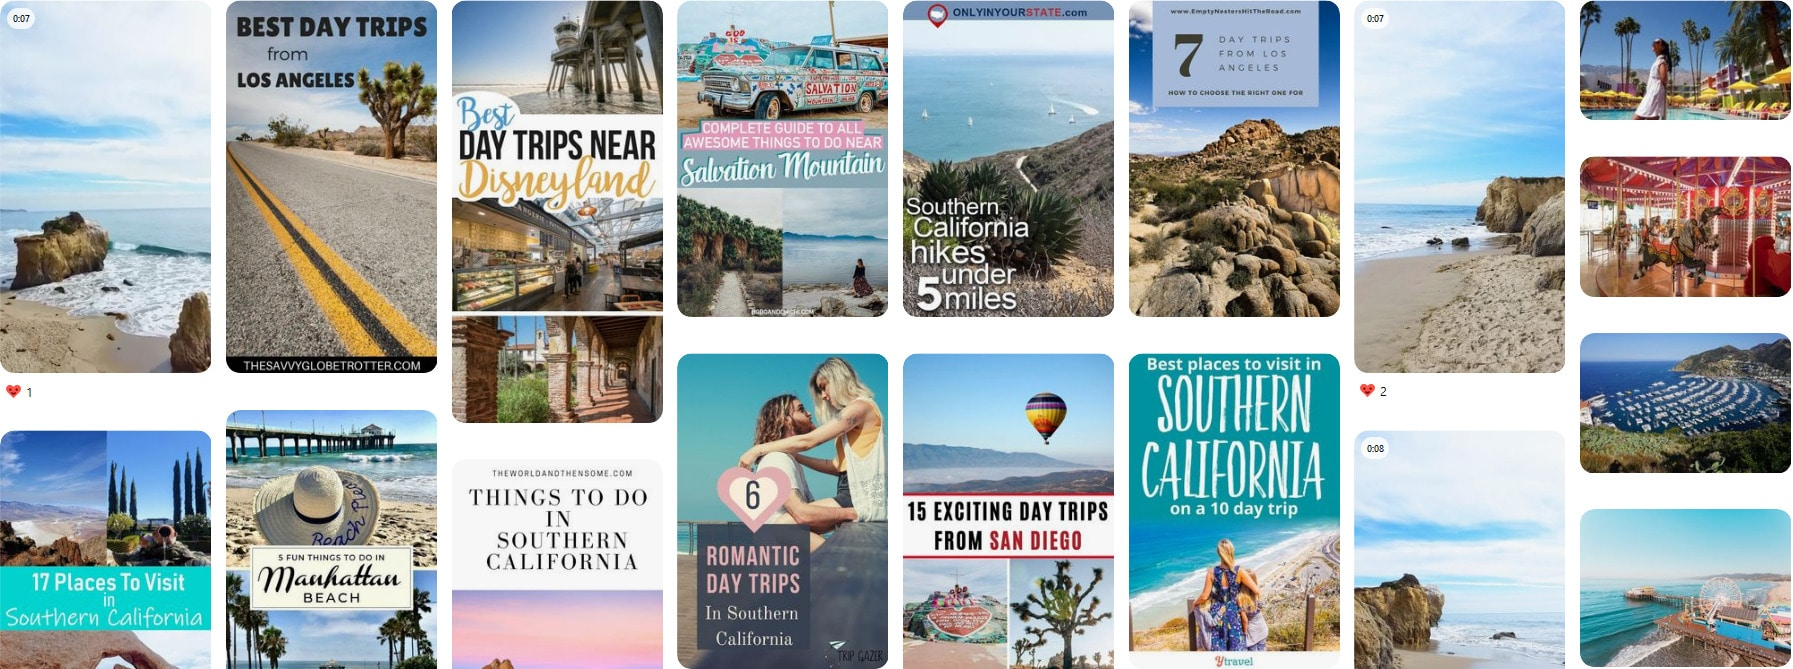 southern california day trips